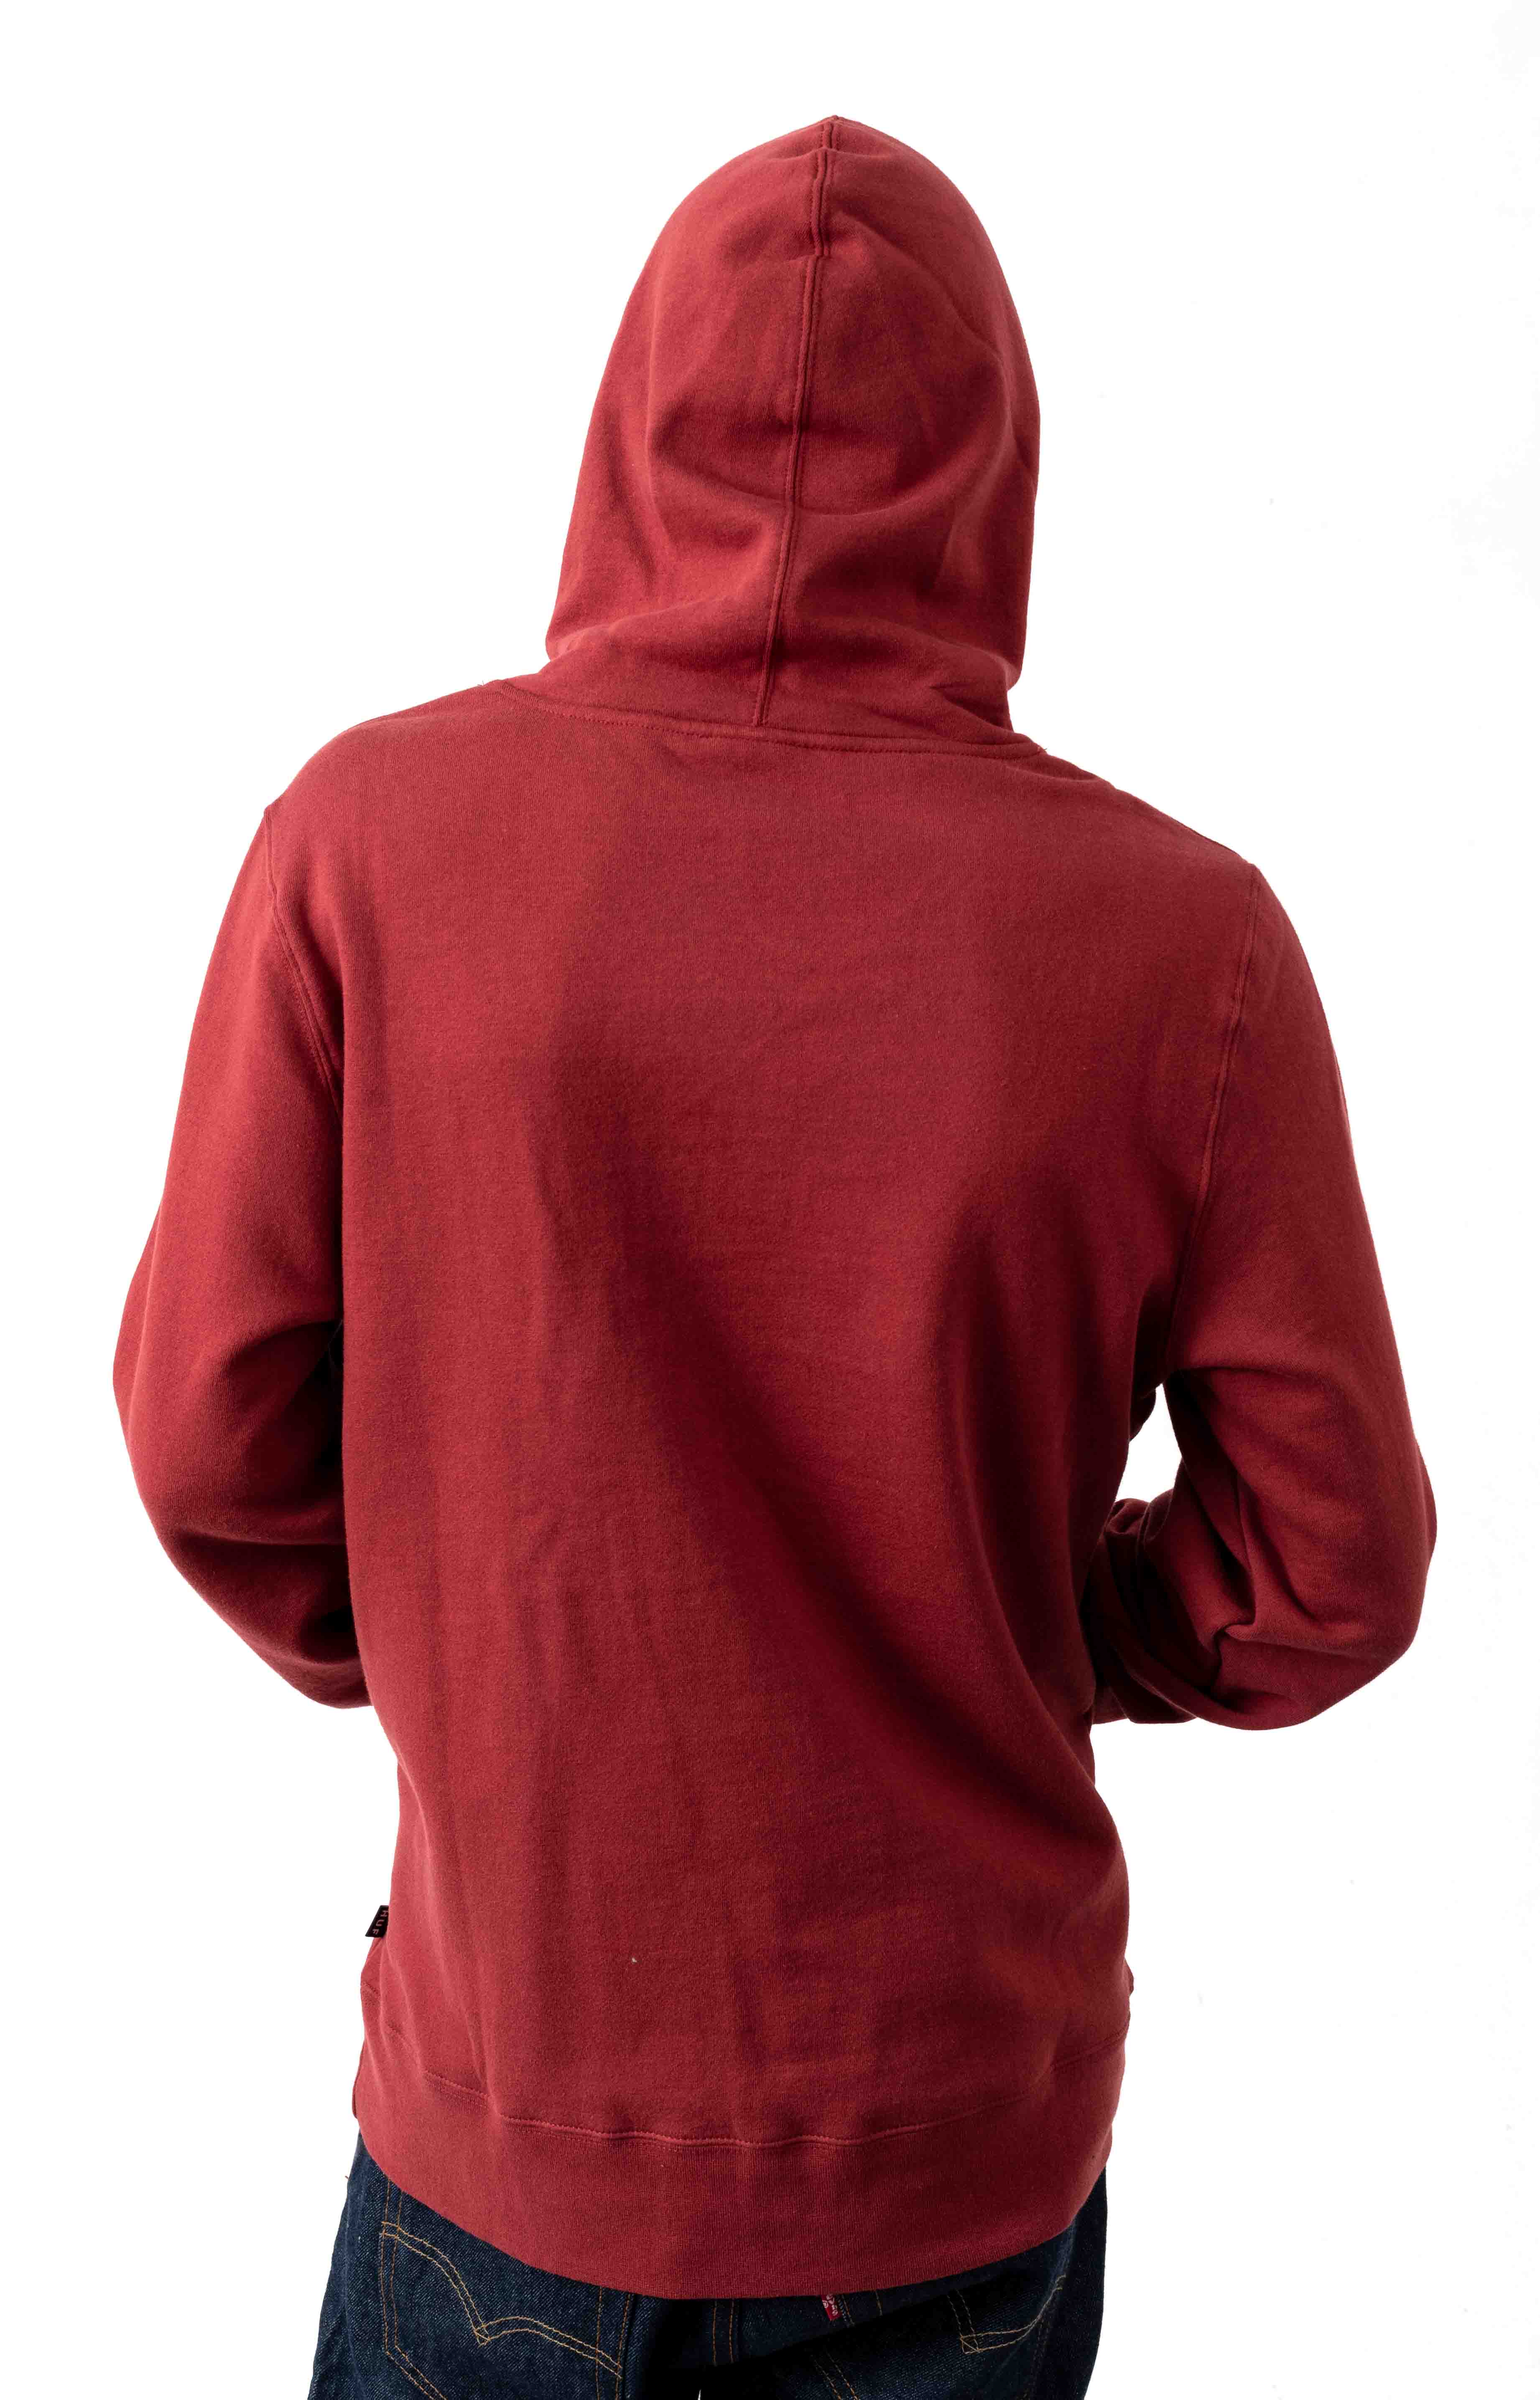 Burn Fast Pullover Hoodie - Red Pear  3